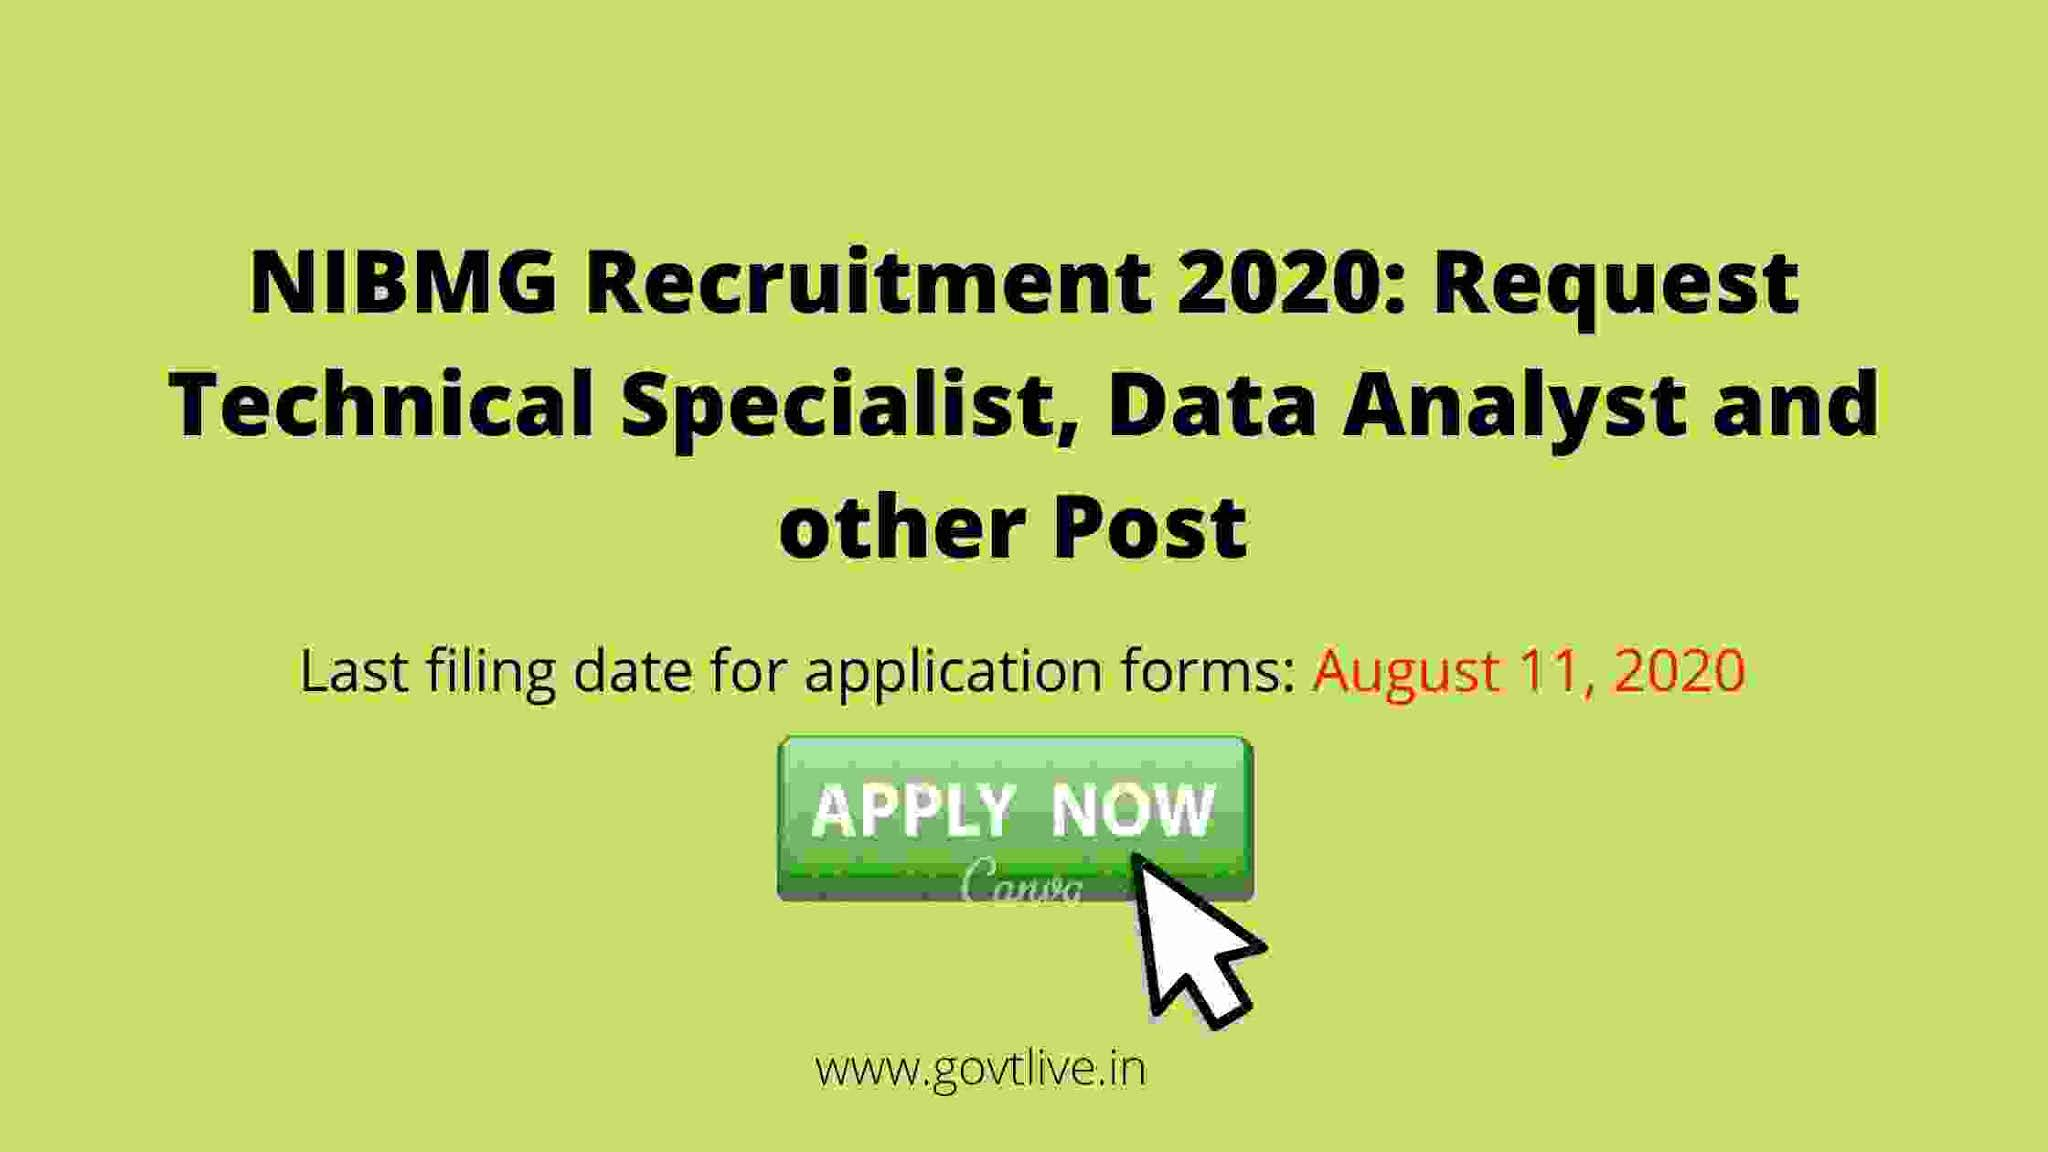 NIBMG Recruitment 2020: Request Technical Specialist, Data Analyst and other publications